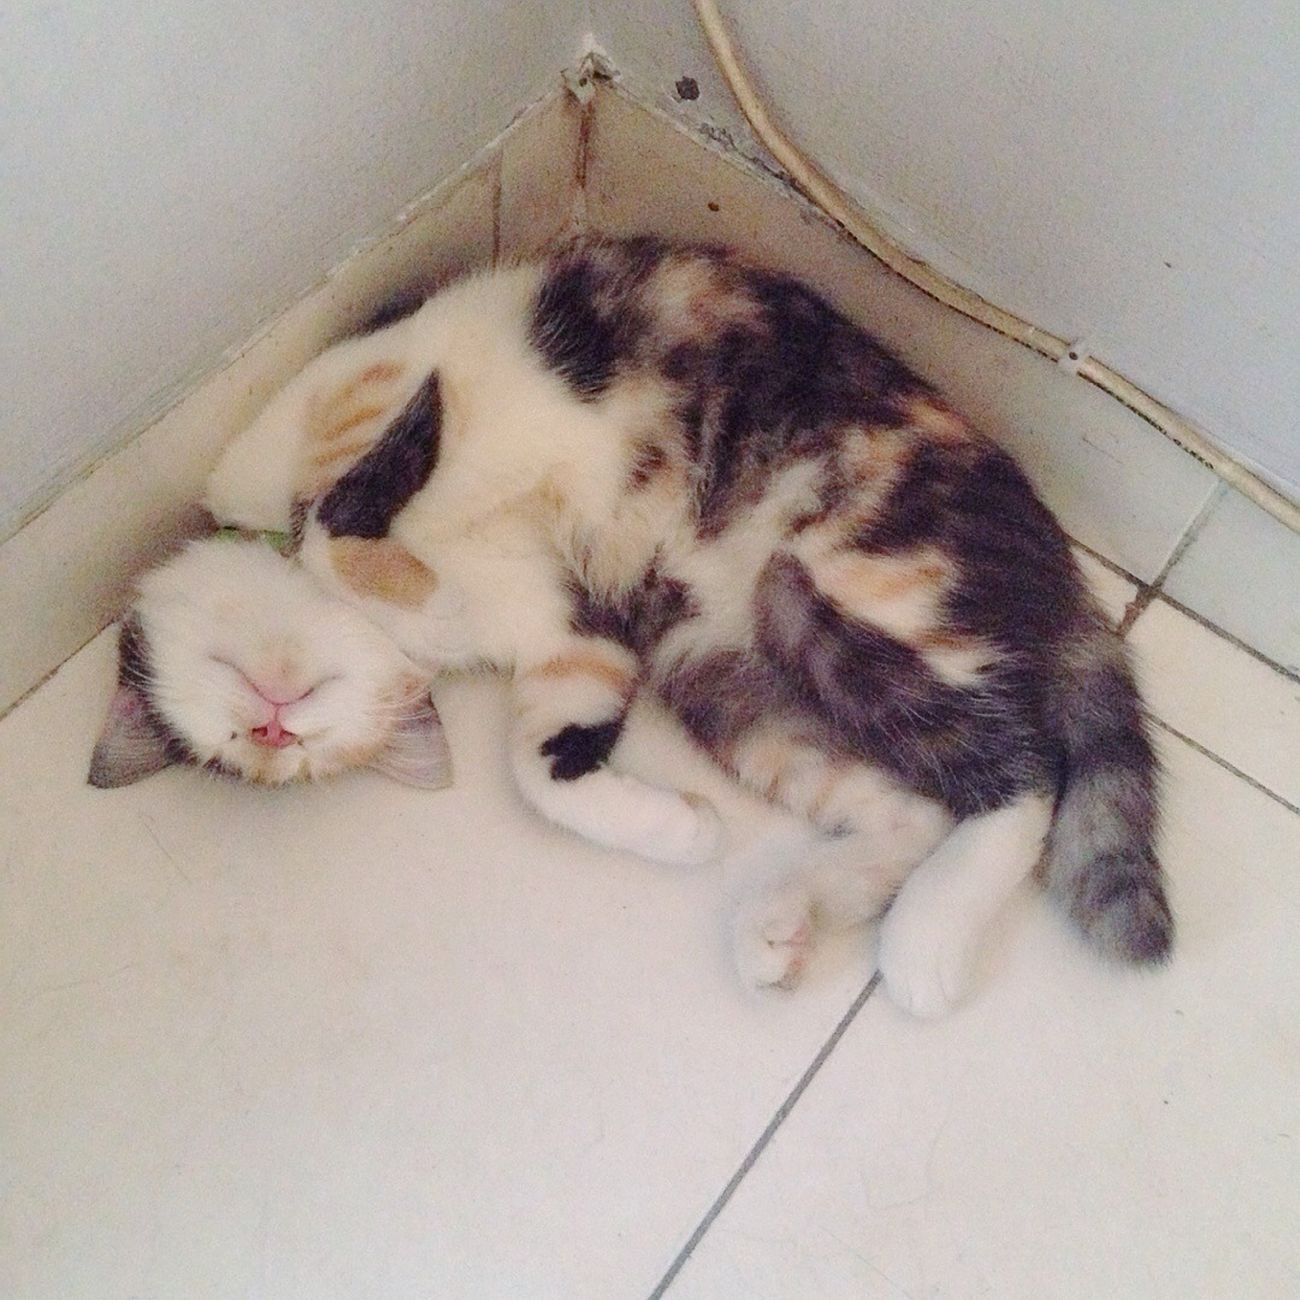 Blinky tidur di sudut ruang tamu. Hobbies By ITag Familia By ITag Made In Driaz By ITag The Families By ITag Animal By ITag Pets By ITag